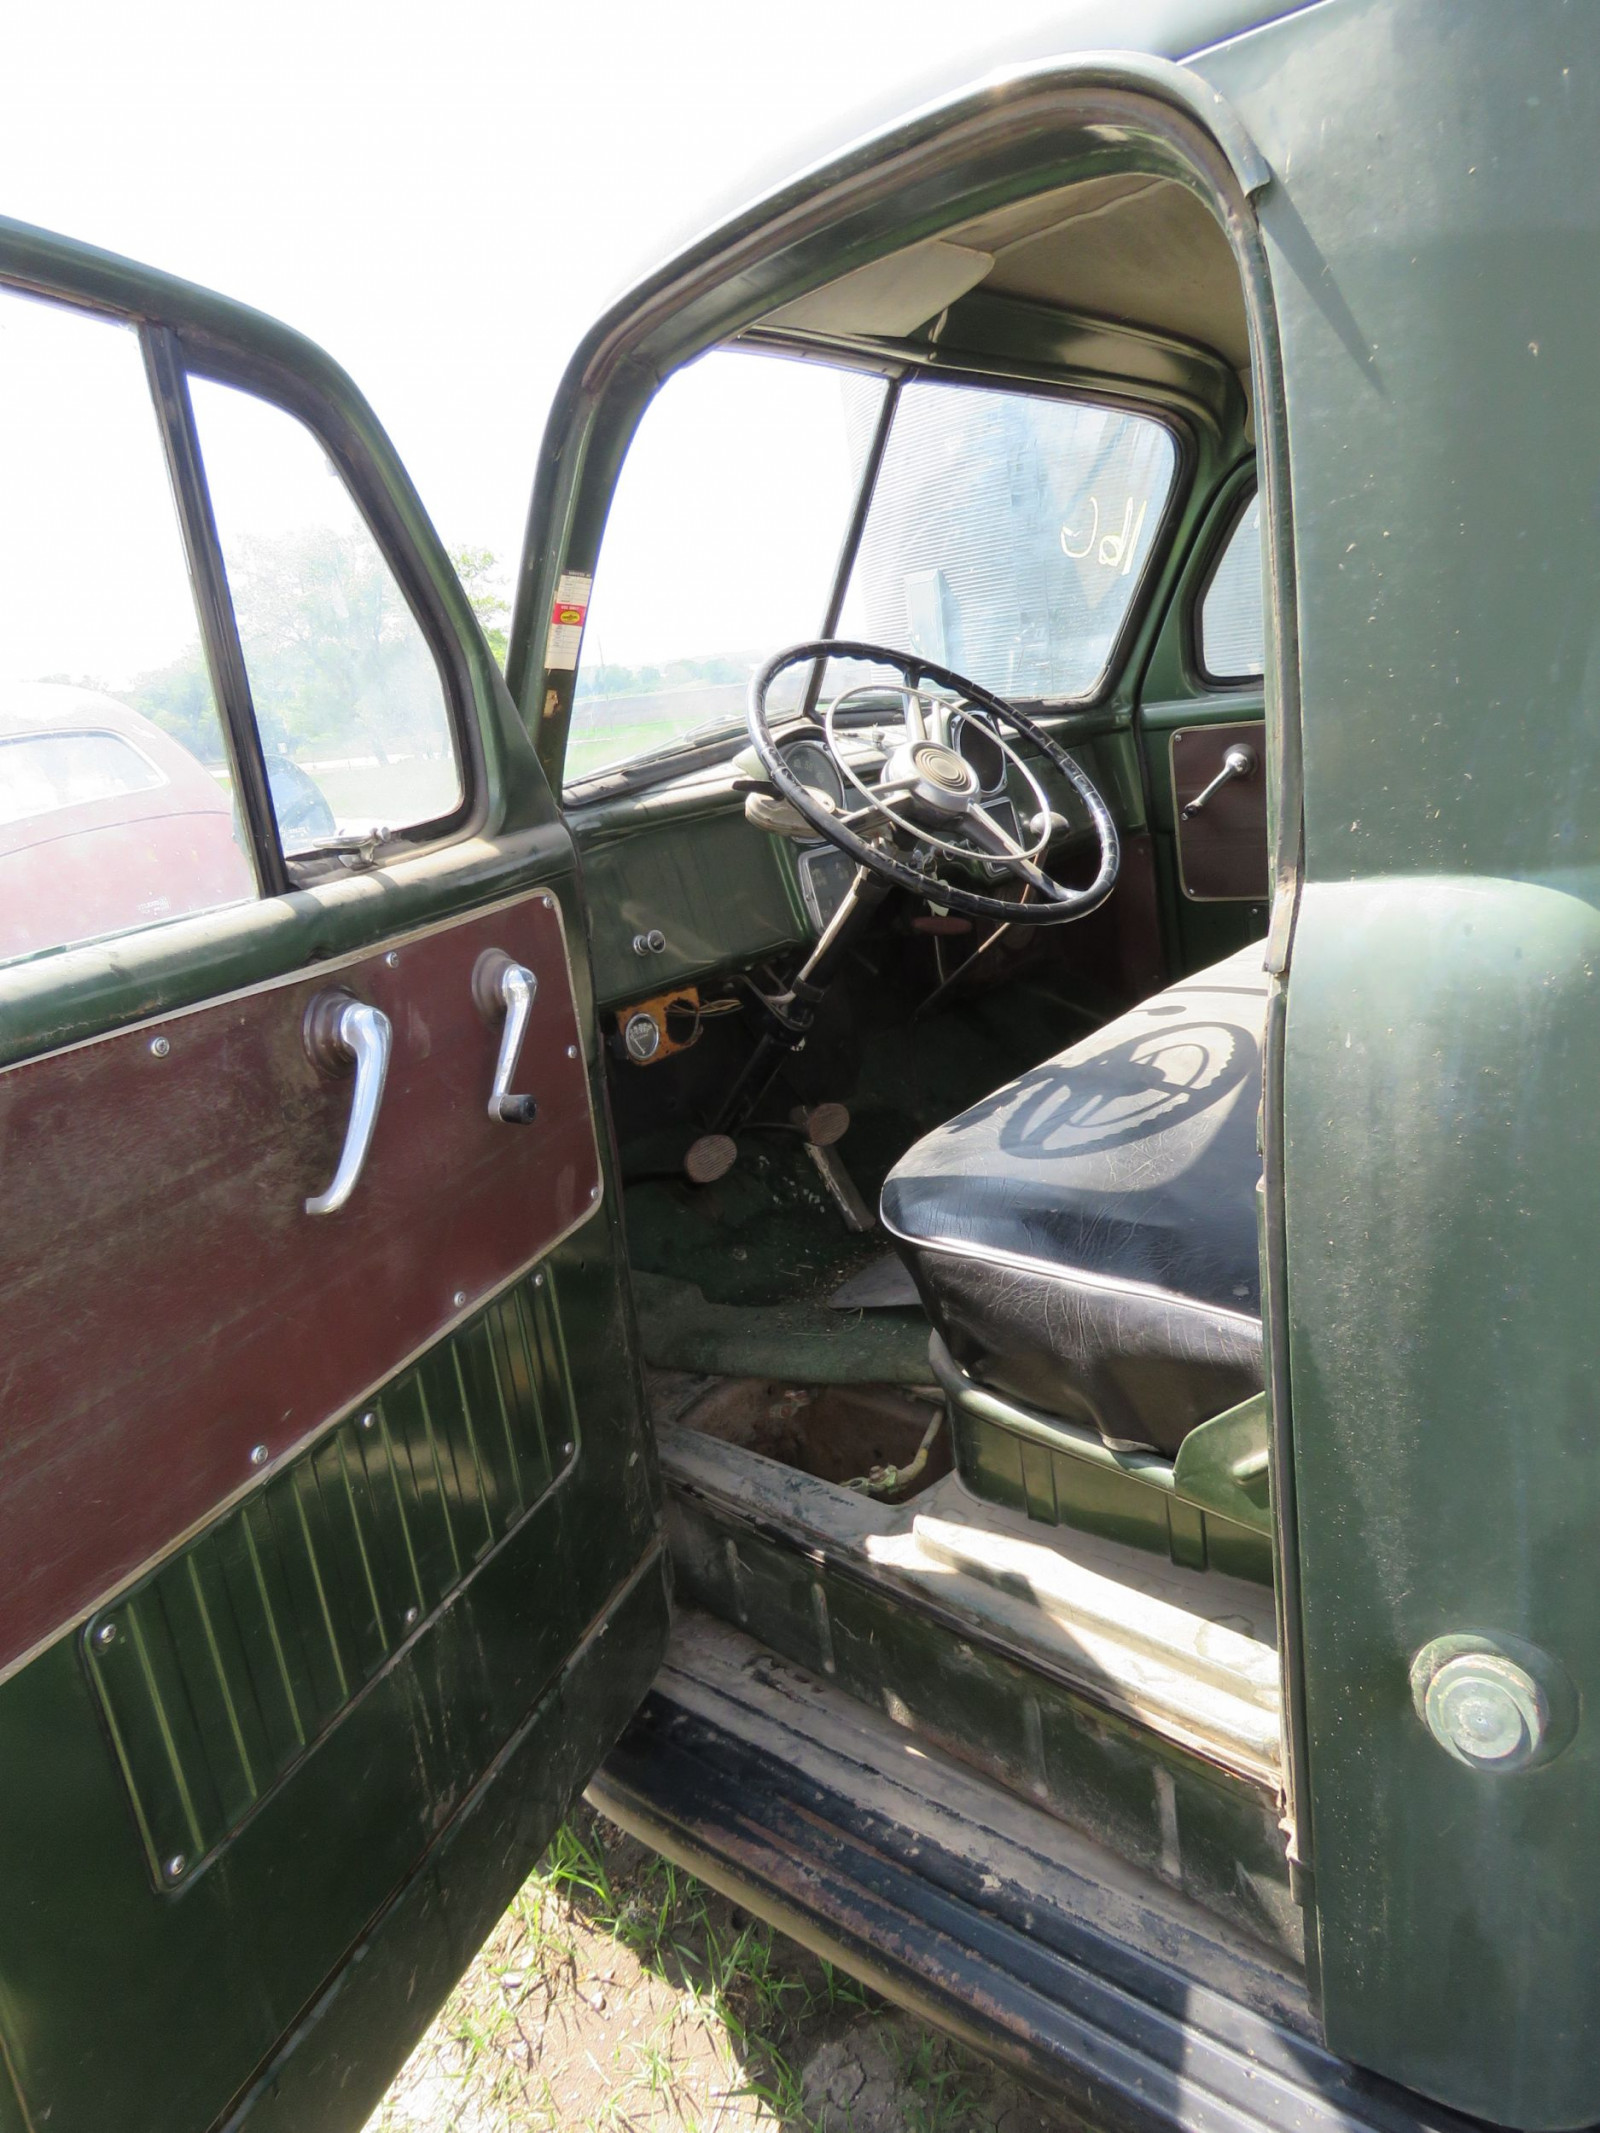 1953 Dodge Job Rated Pickup 83395544 - Image 5